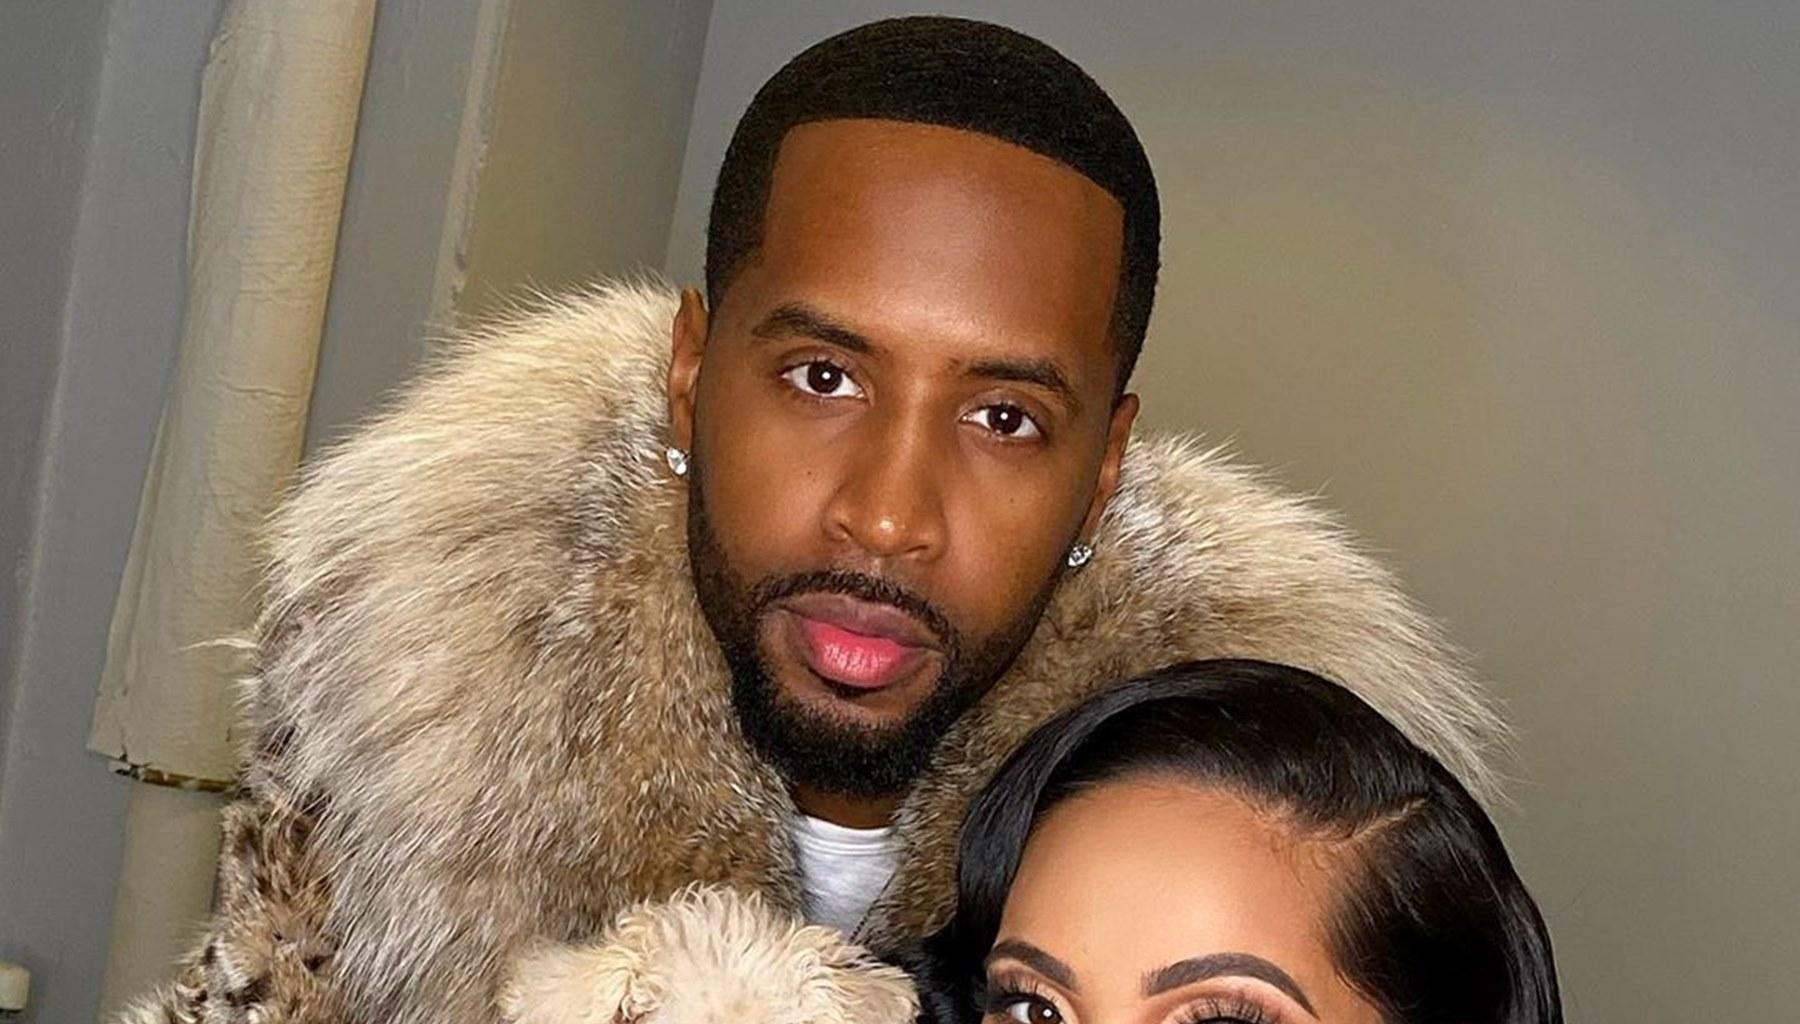 Nicki Minaj Seems To Be Living Rent Free In Safaree Samuels And Erica Mena's Heads Which Led To This New Drama